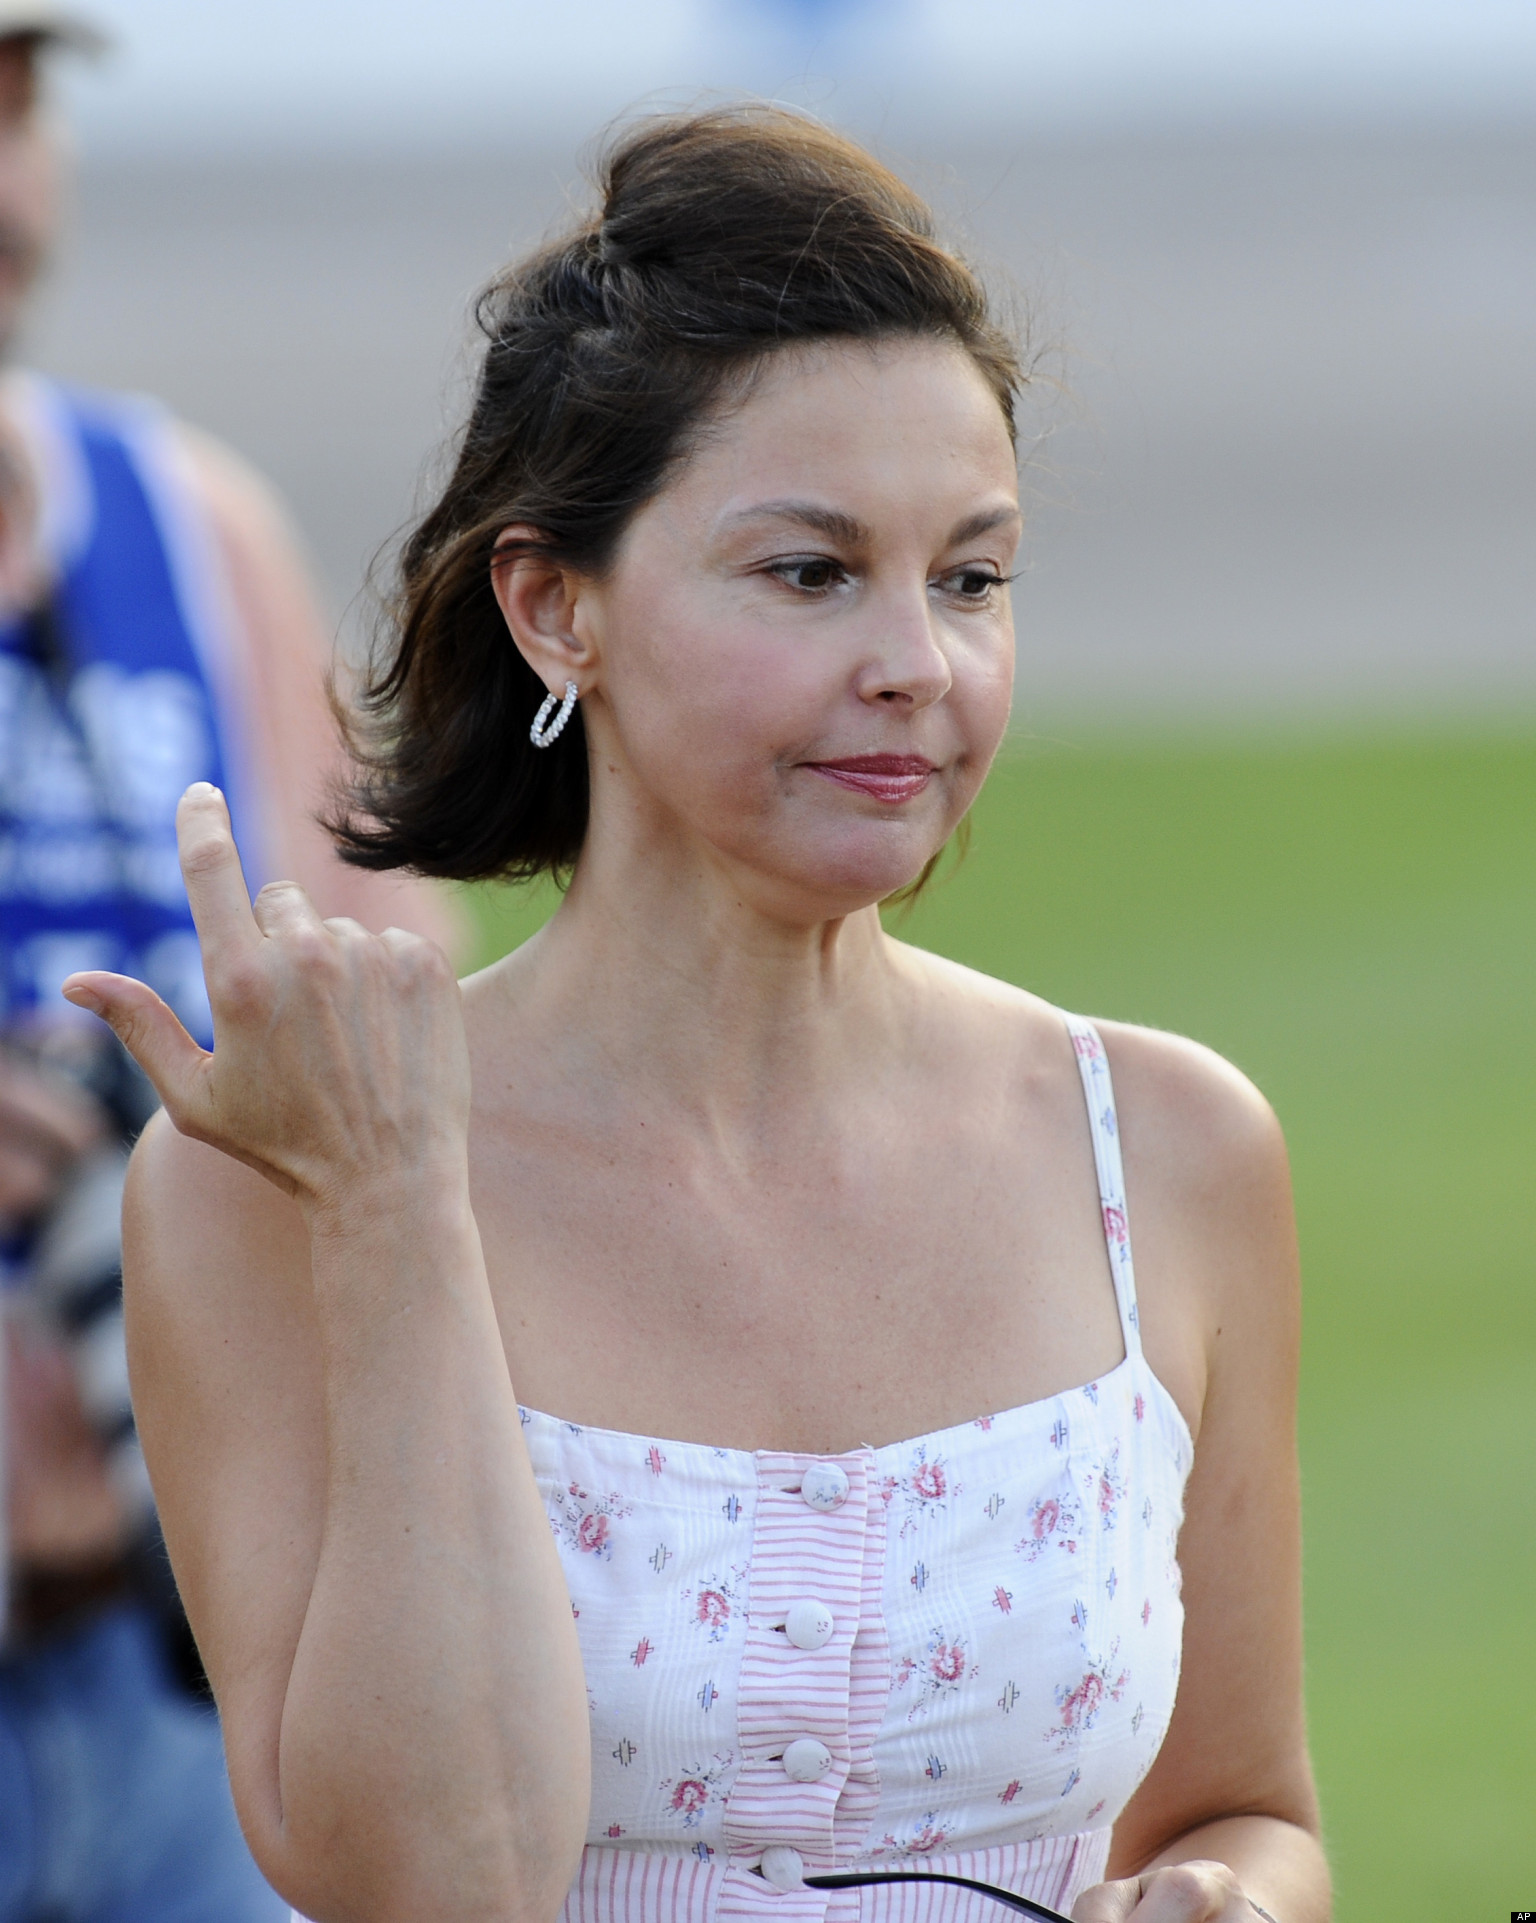 Ashley Judd Cunt ashley judd is an angry woman - page 4 - ar15